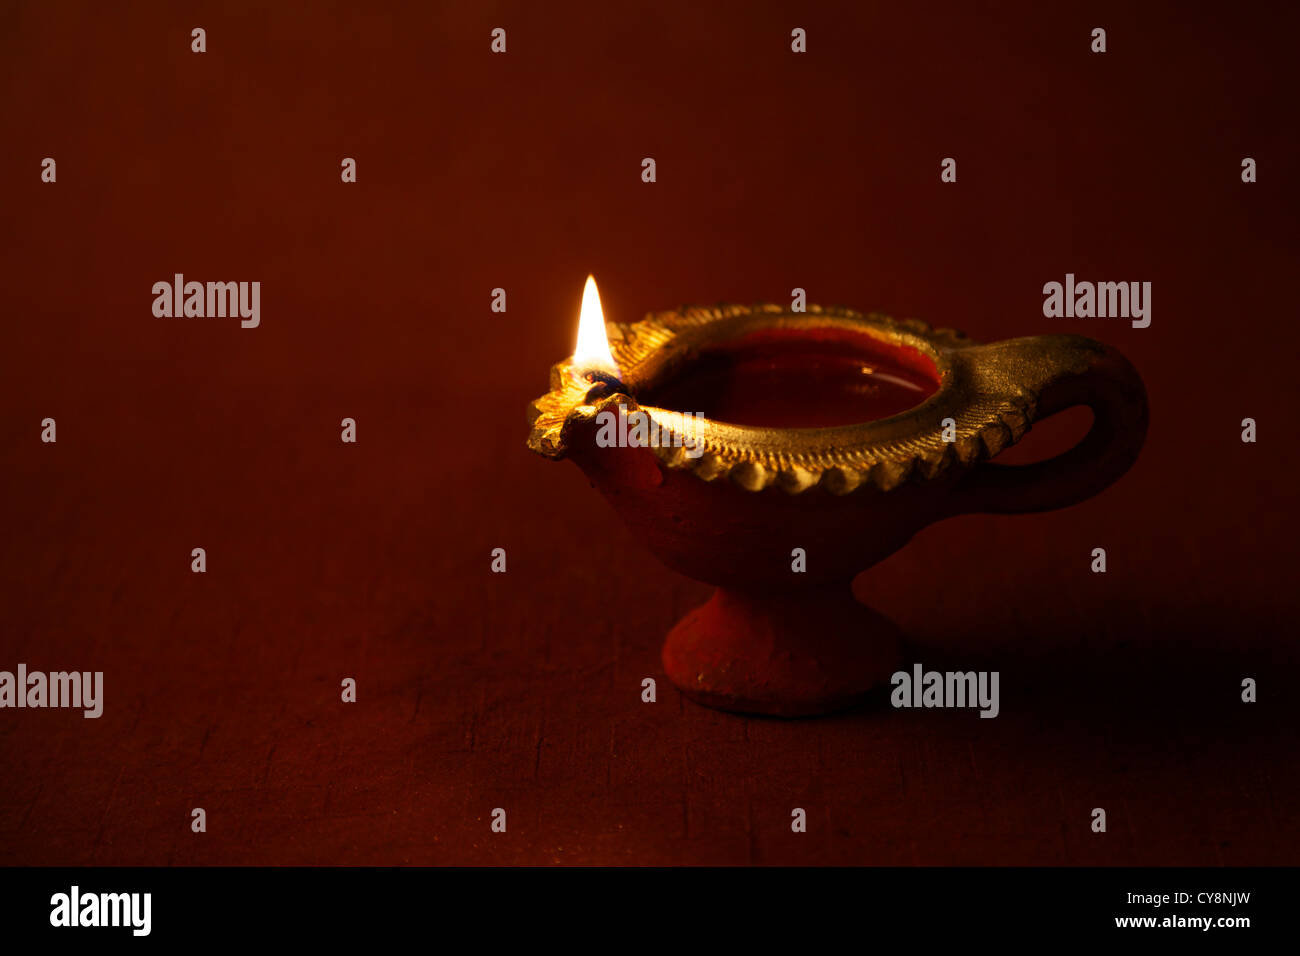 Decorative lamps on festive occasion of Diwali - Stock Image